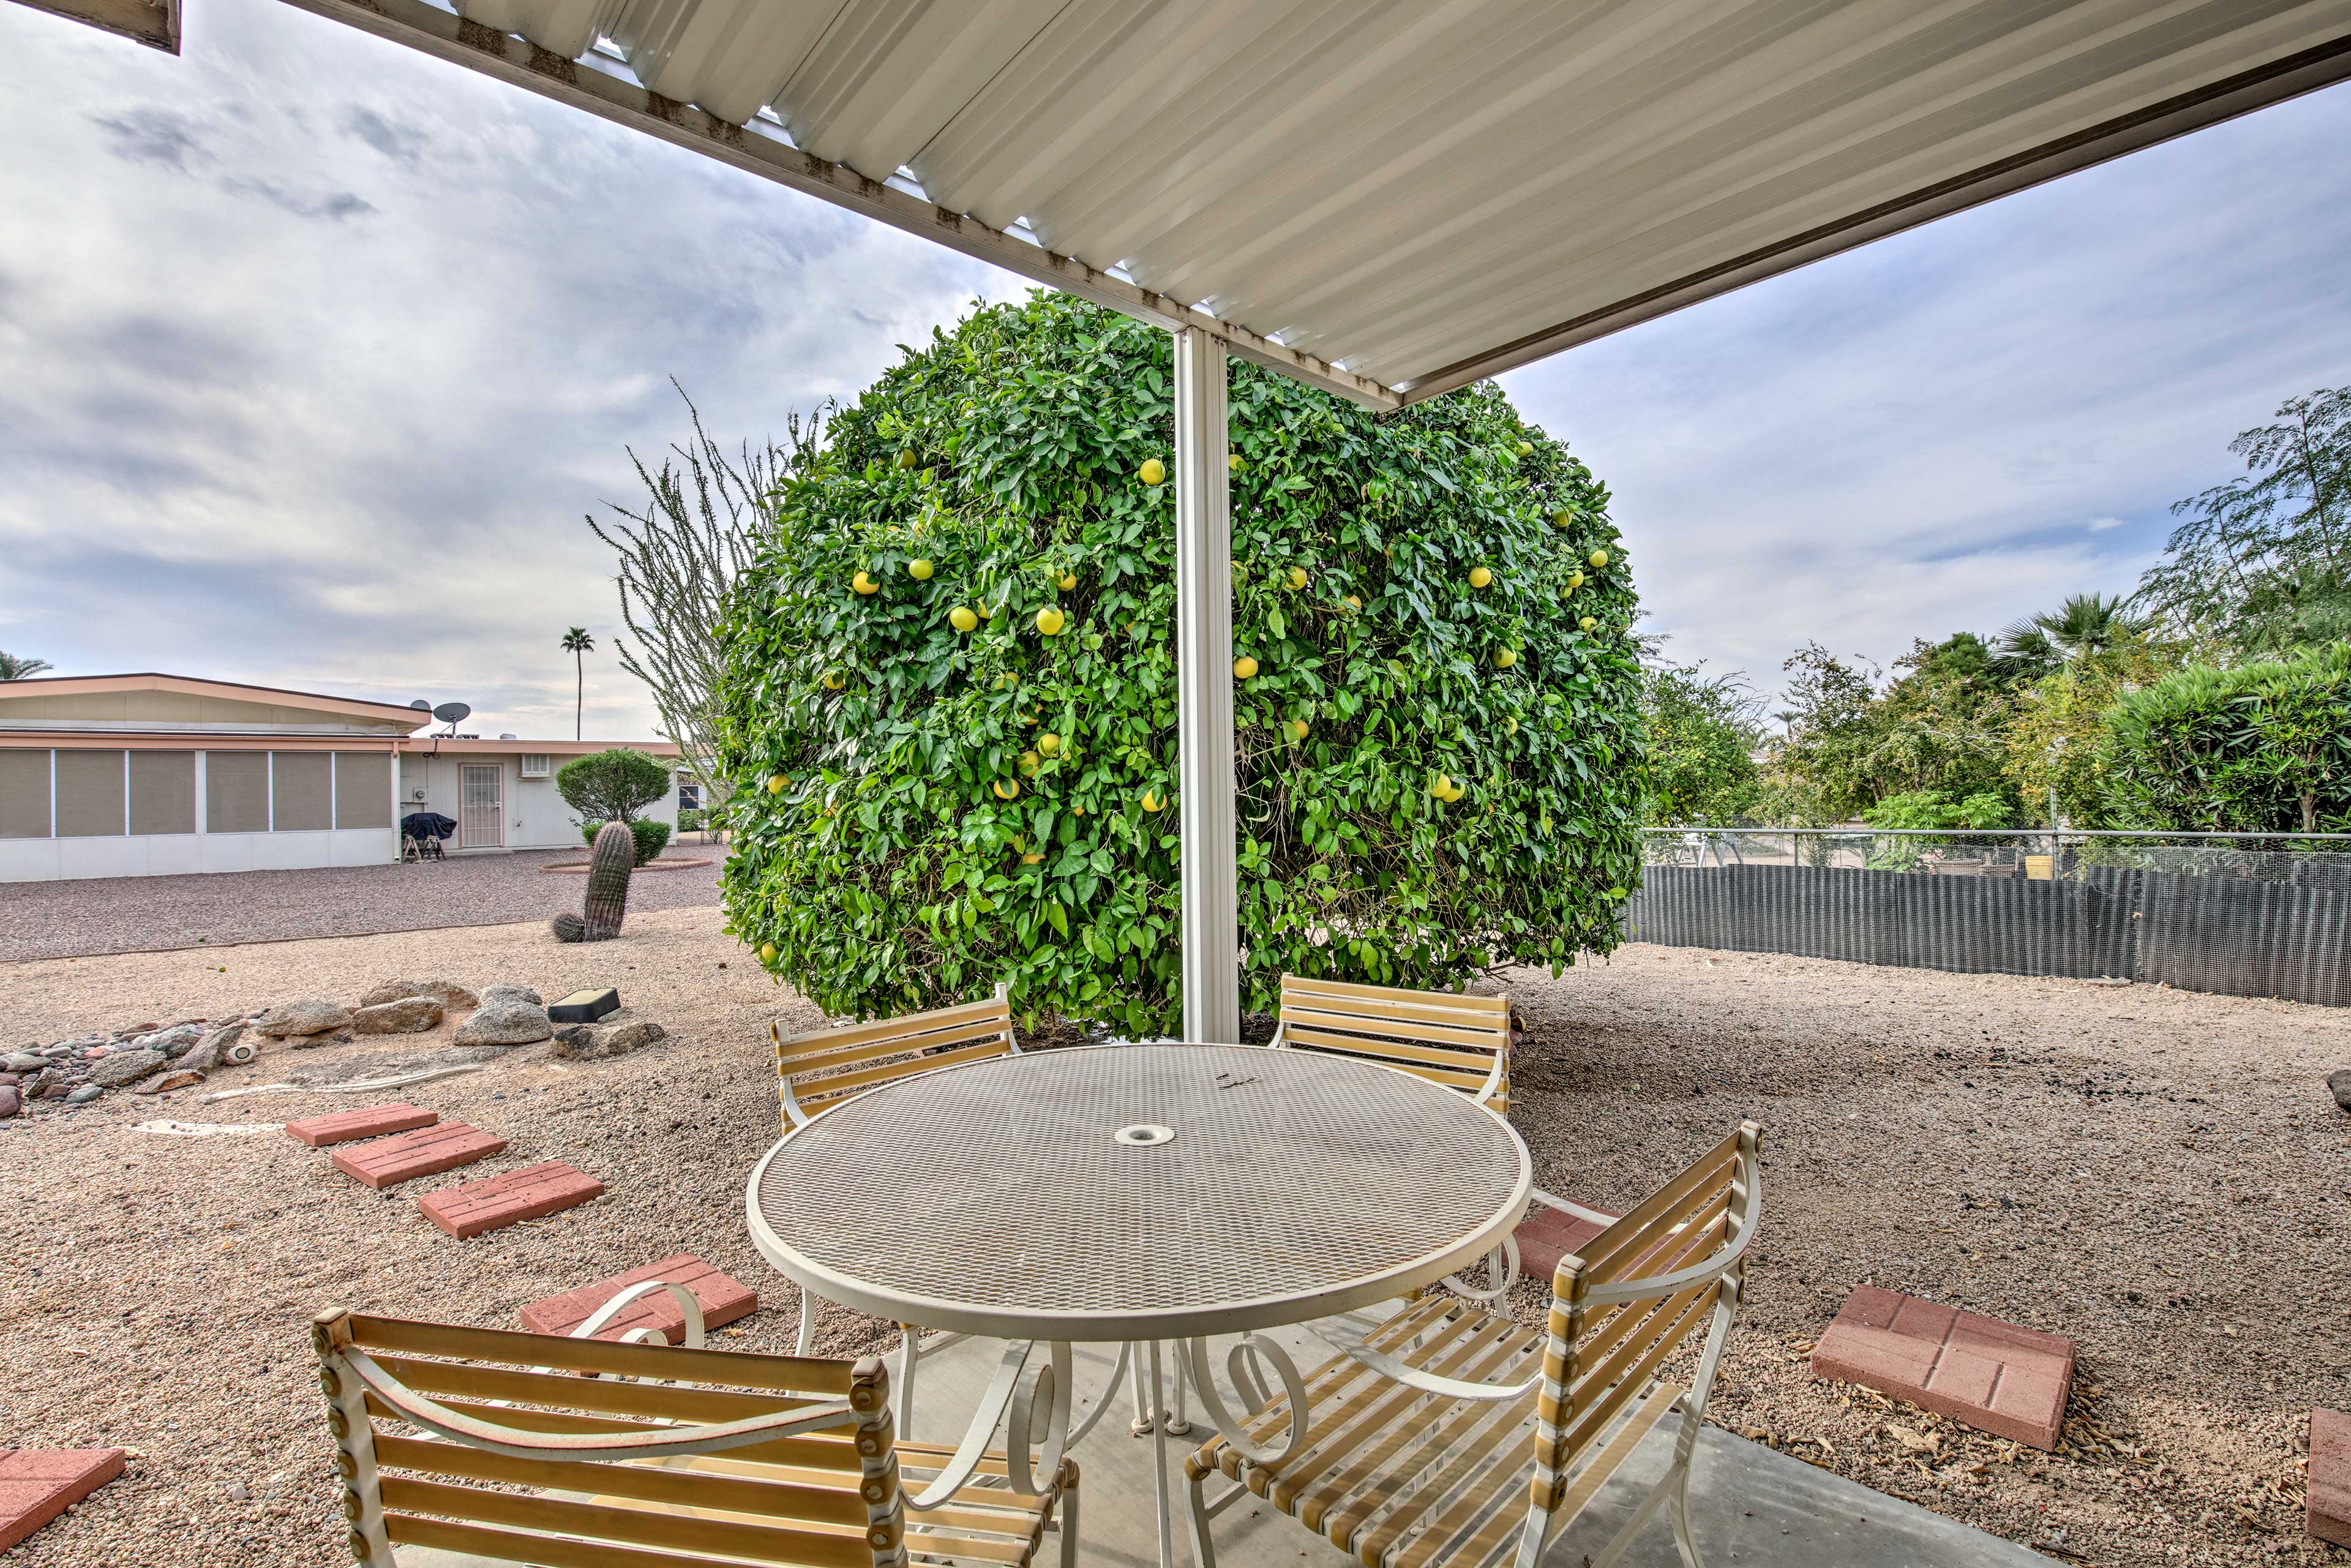 This Sun City escape offers a peaceful home base to enjoy the area attractions.